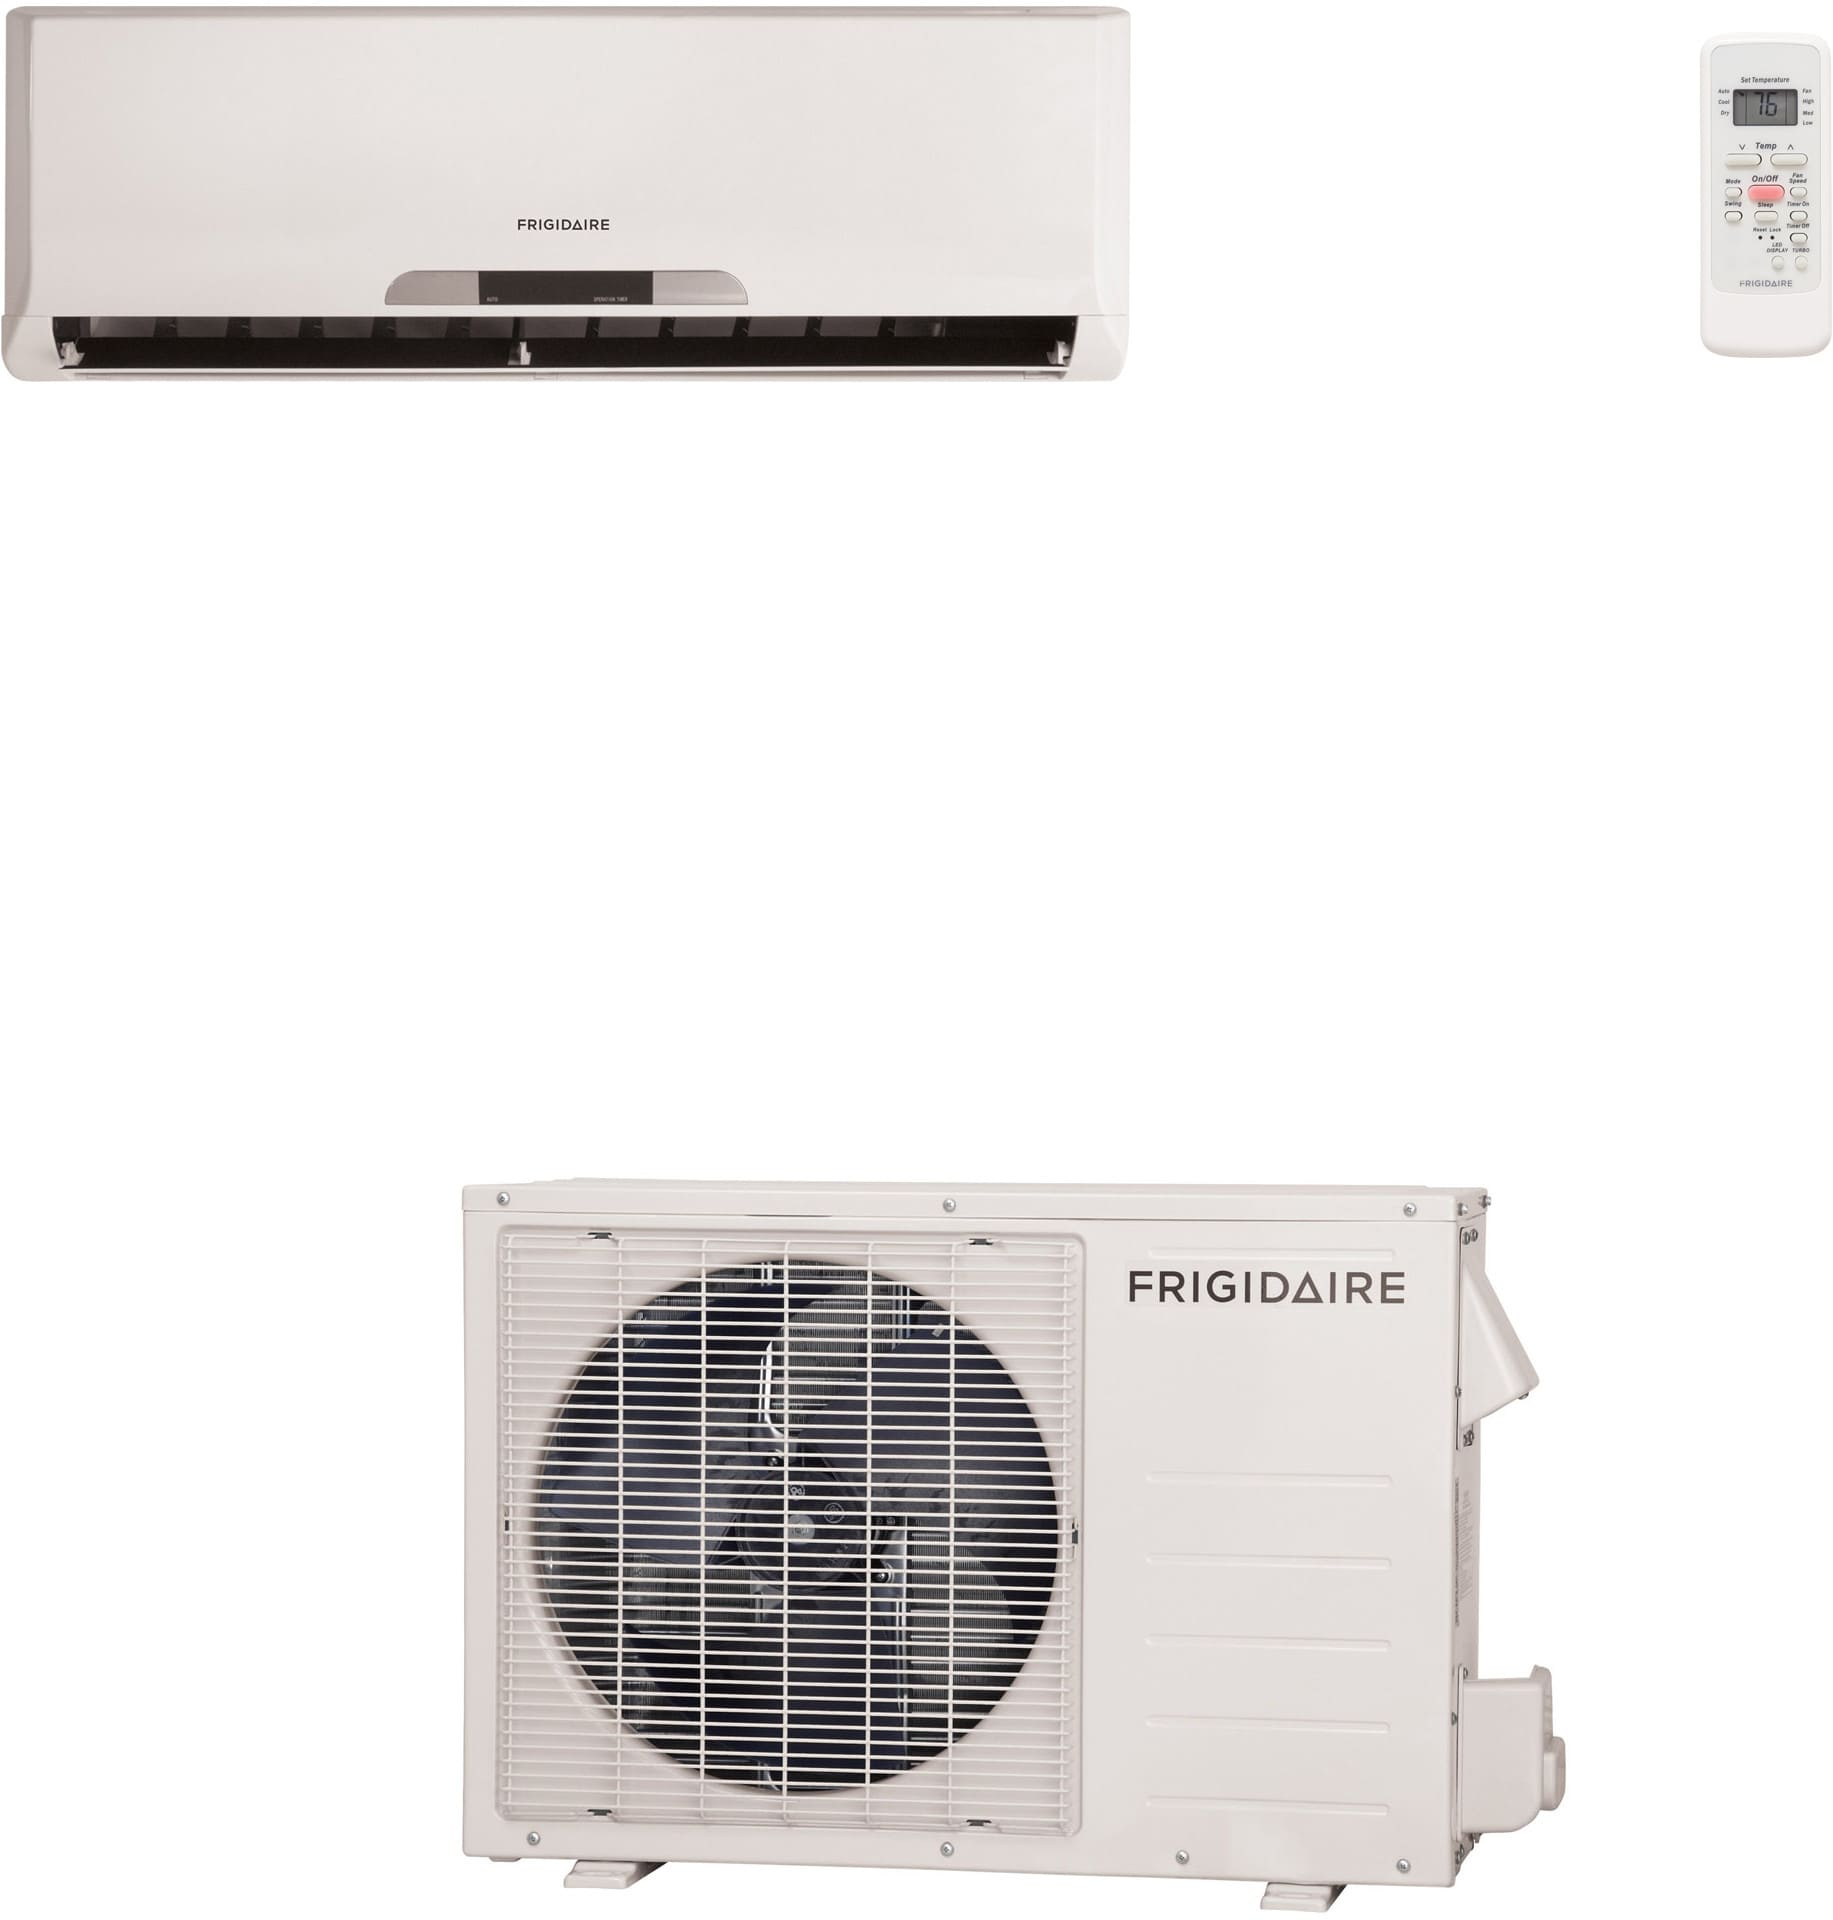 frigidaire frs123ls1 btu single zone wallmounted mini split air system with 550 sq ft cooling area r410a refrigerant 330 cfm - Frigidaire Ac Unit